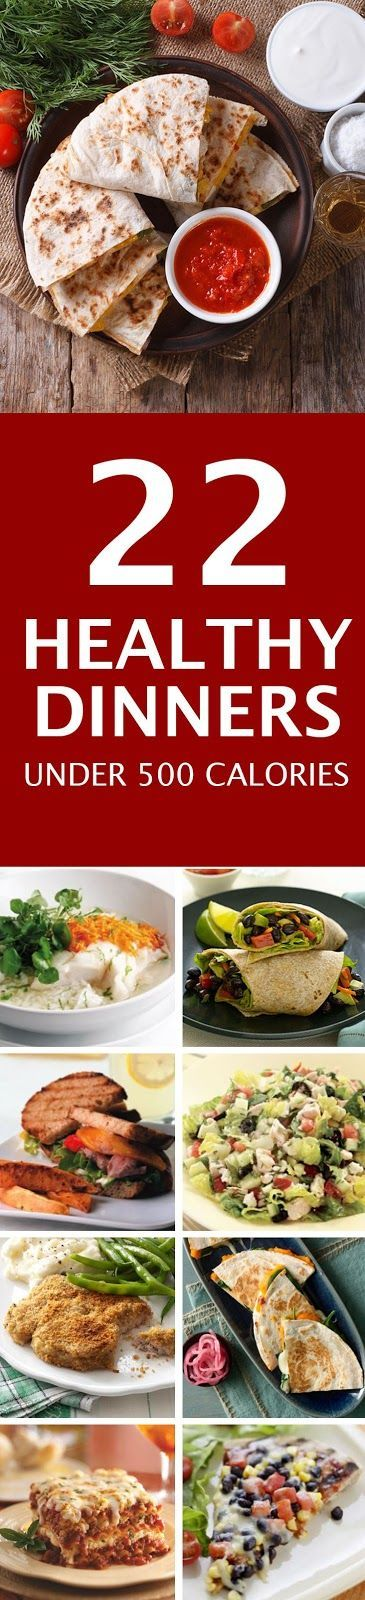 Recipes and Cooking Tips: 22 Dinner Recipes Under 500 Calories